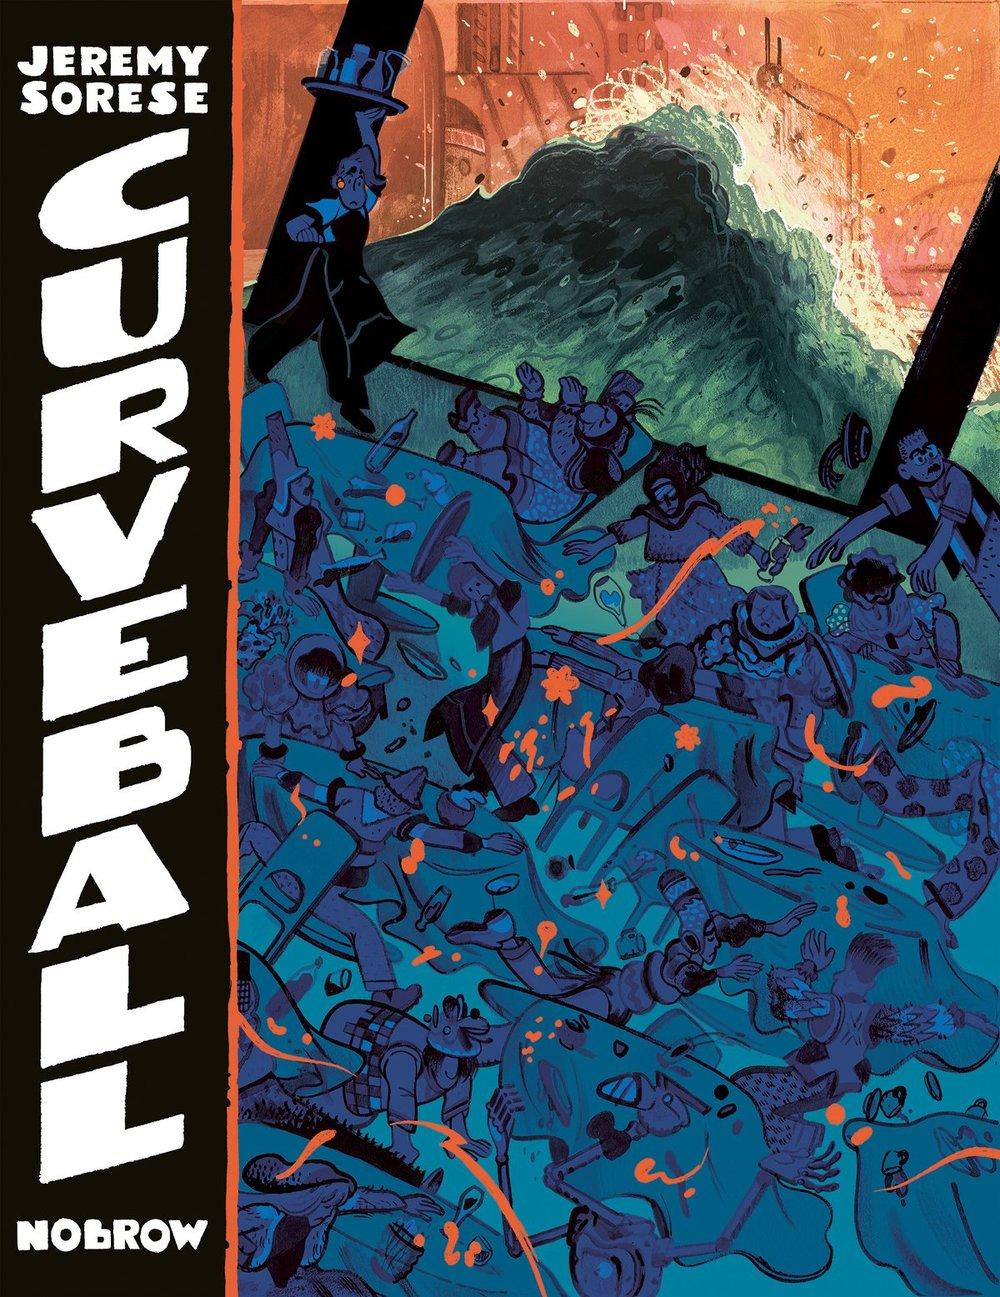 CURVEBALL by Jeremy Sorese Nobrow Press, November 2015